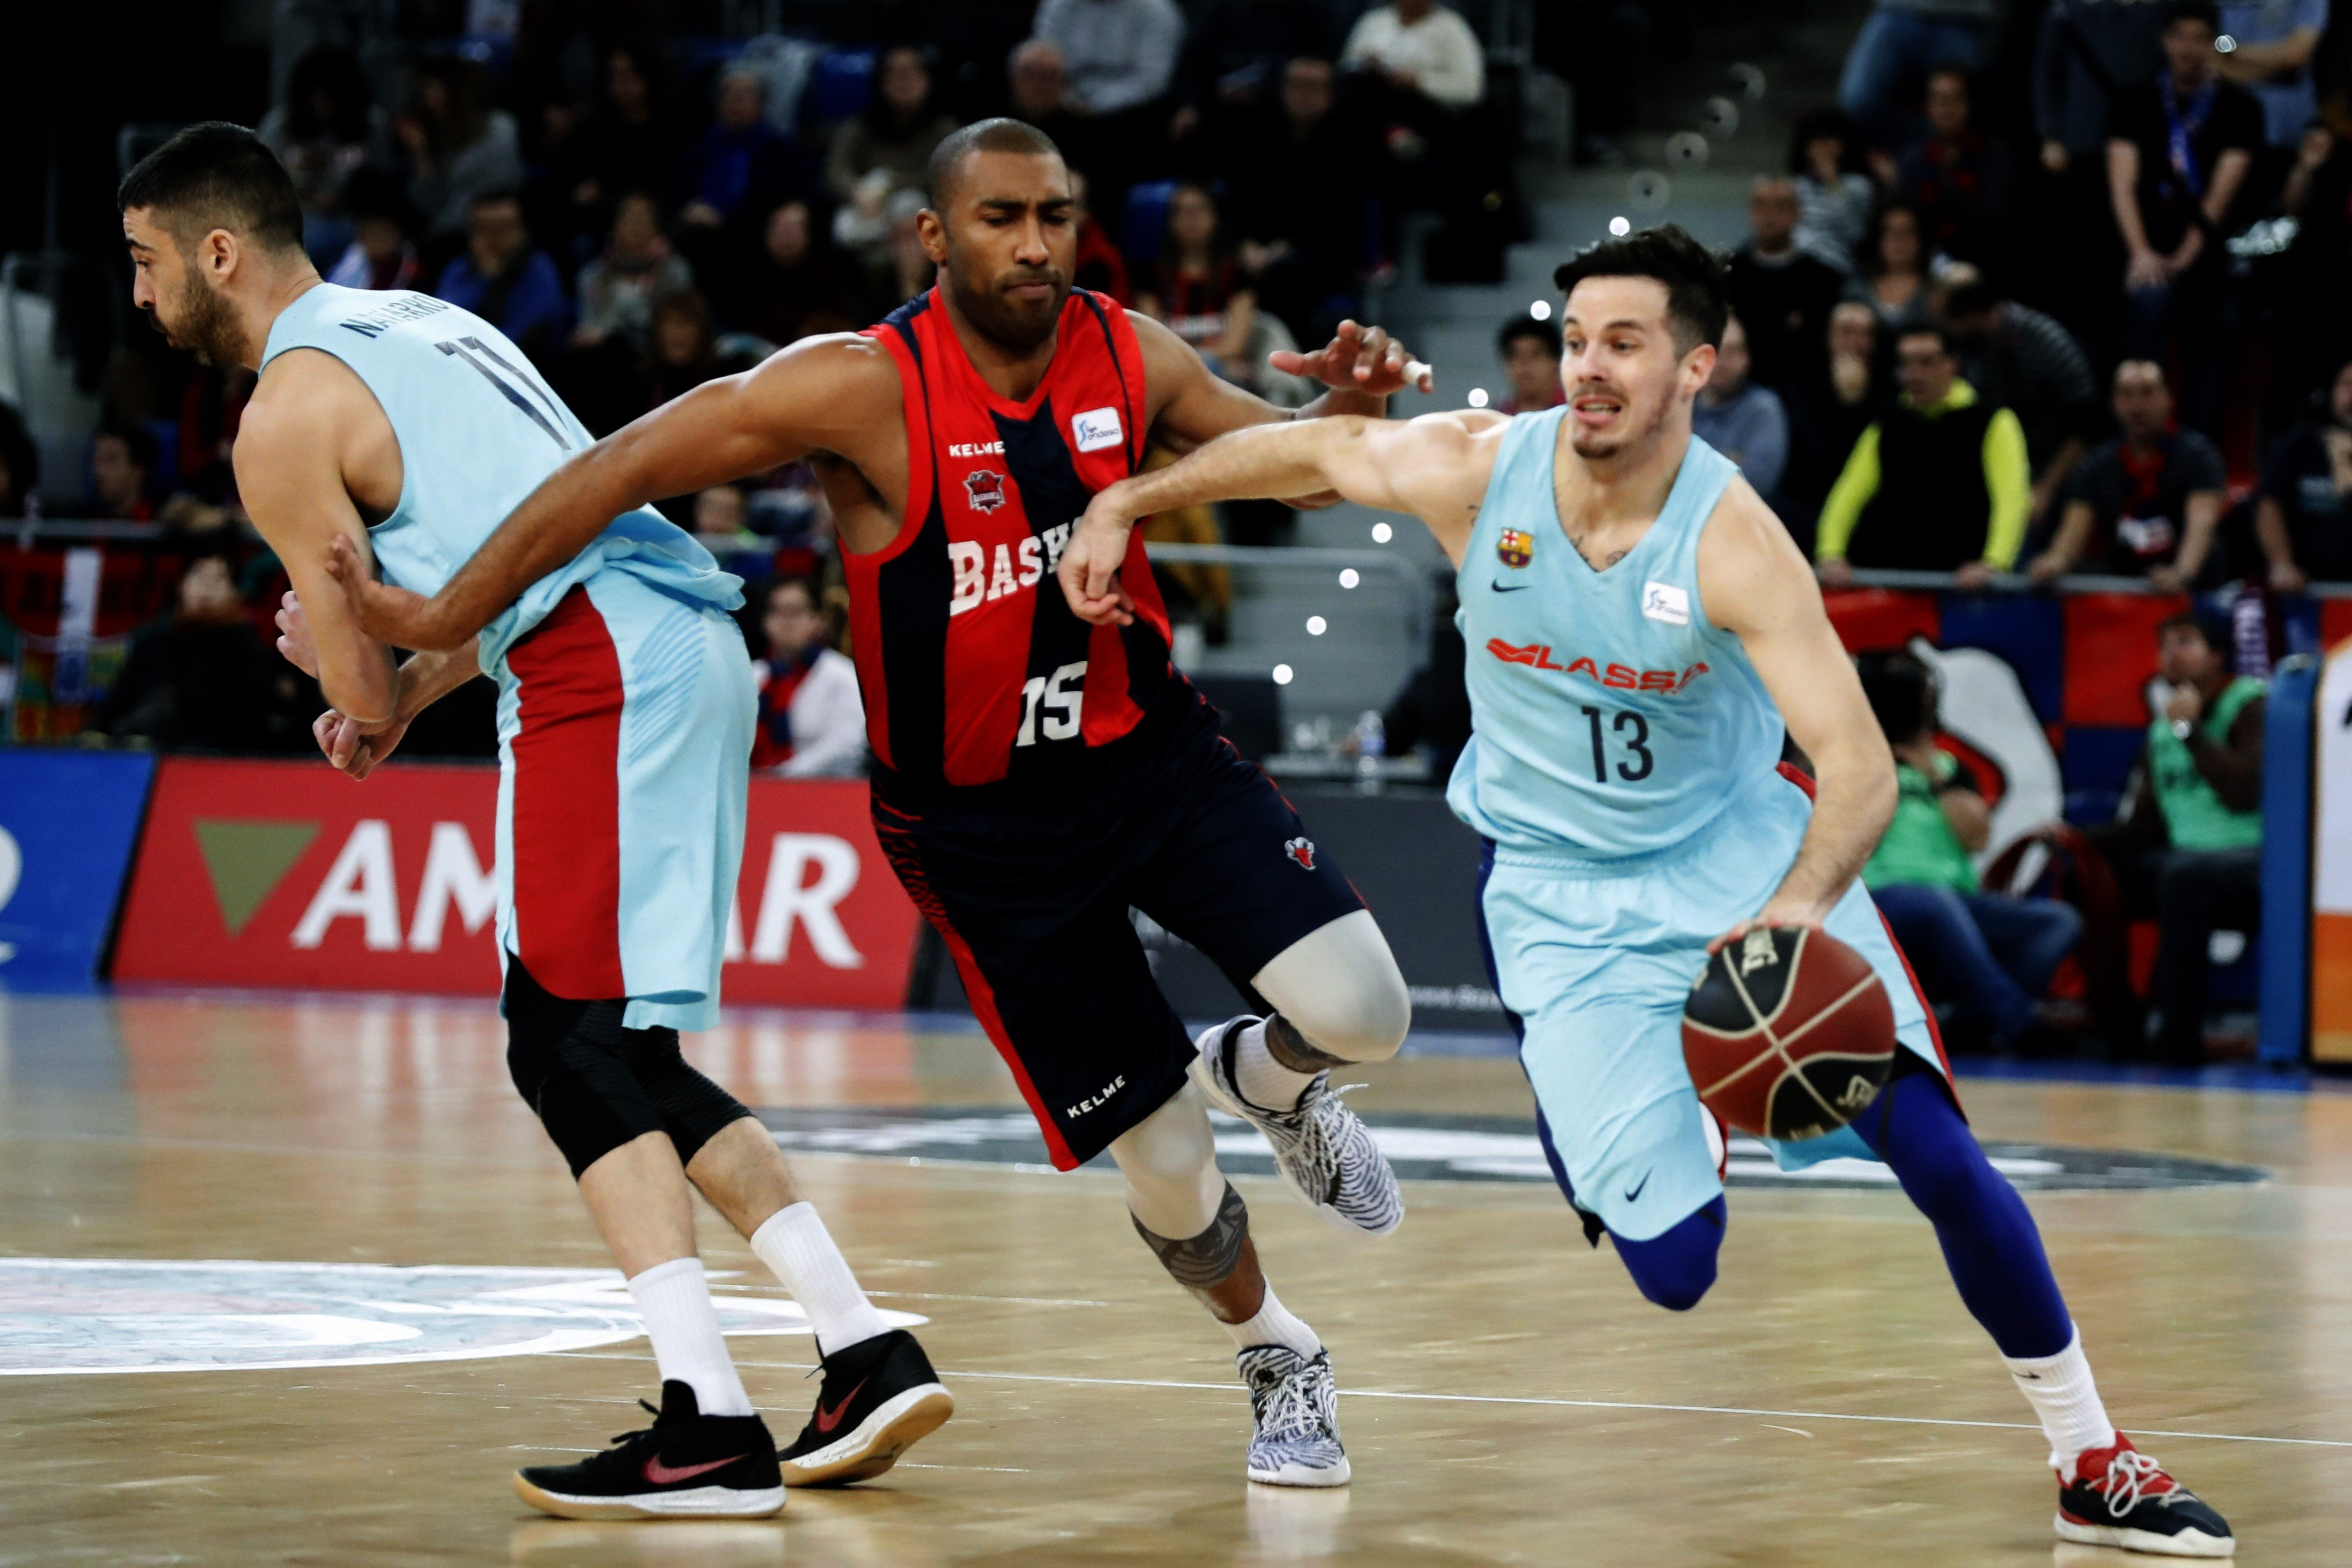 February 4, 2018 - Vitoria, España - FC Barcelona Lassa's Thomas Heurtel (R) duels for the ball with Baskonia's Jason Granger (C) during their Spanish ACB basketball league played at Fernando Buesa pavilion, in Vitoria, Spain, 04 February 2018. (Credit Image: © David Aguilar/EFE via ZUMA Press)